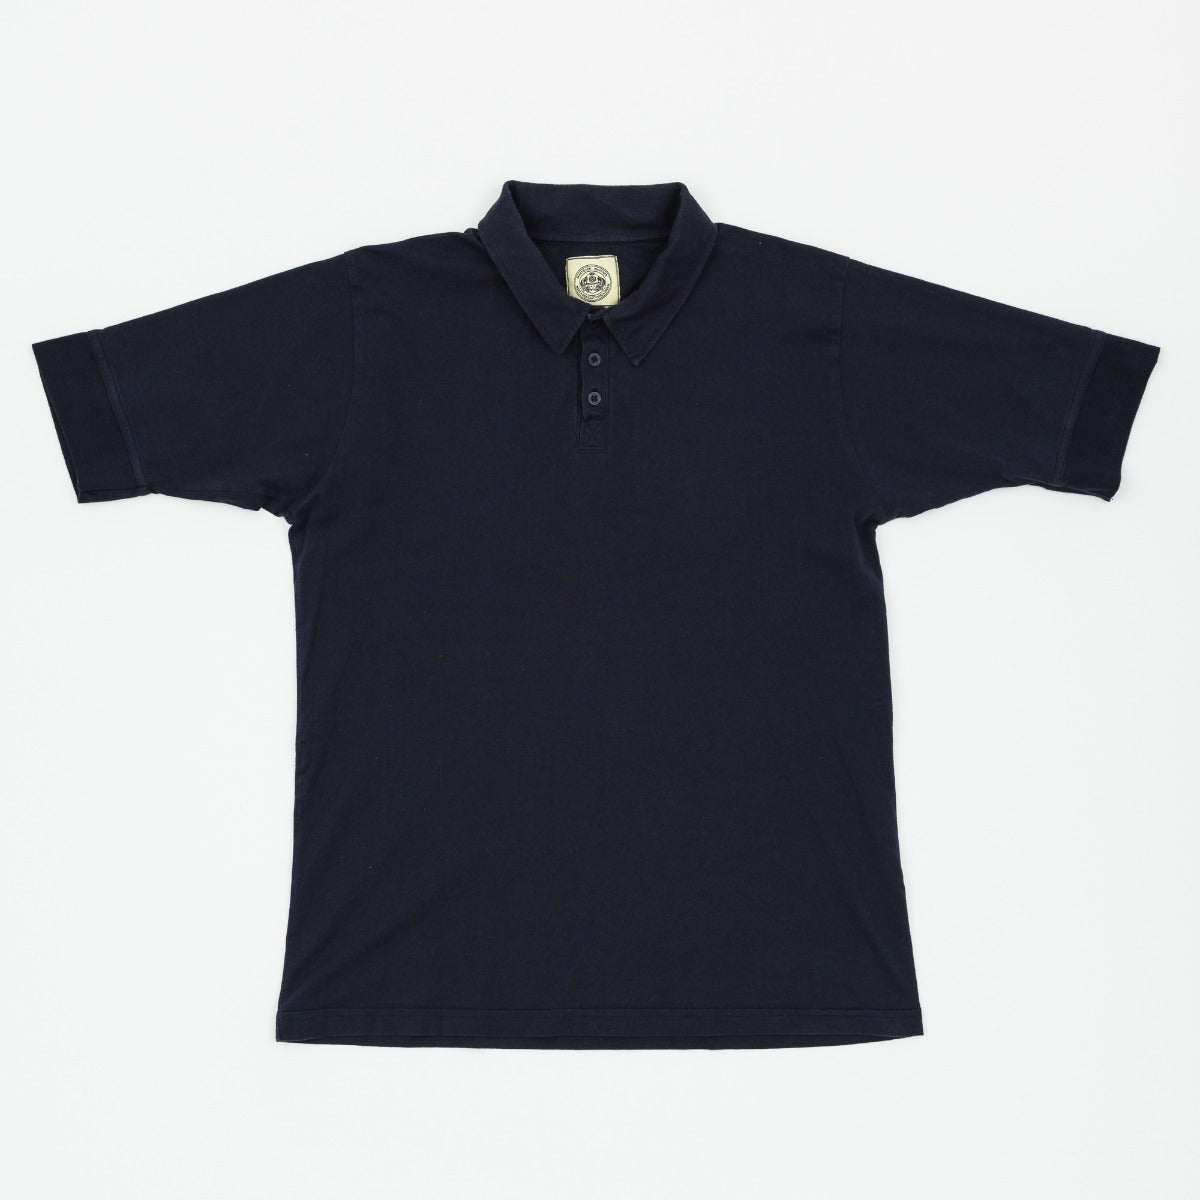 North Sea Clothing Collared Tee